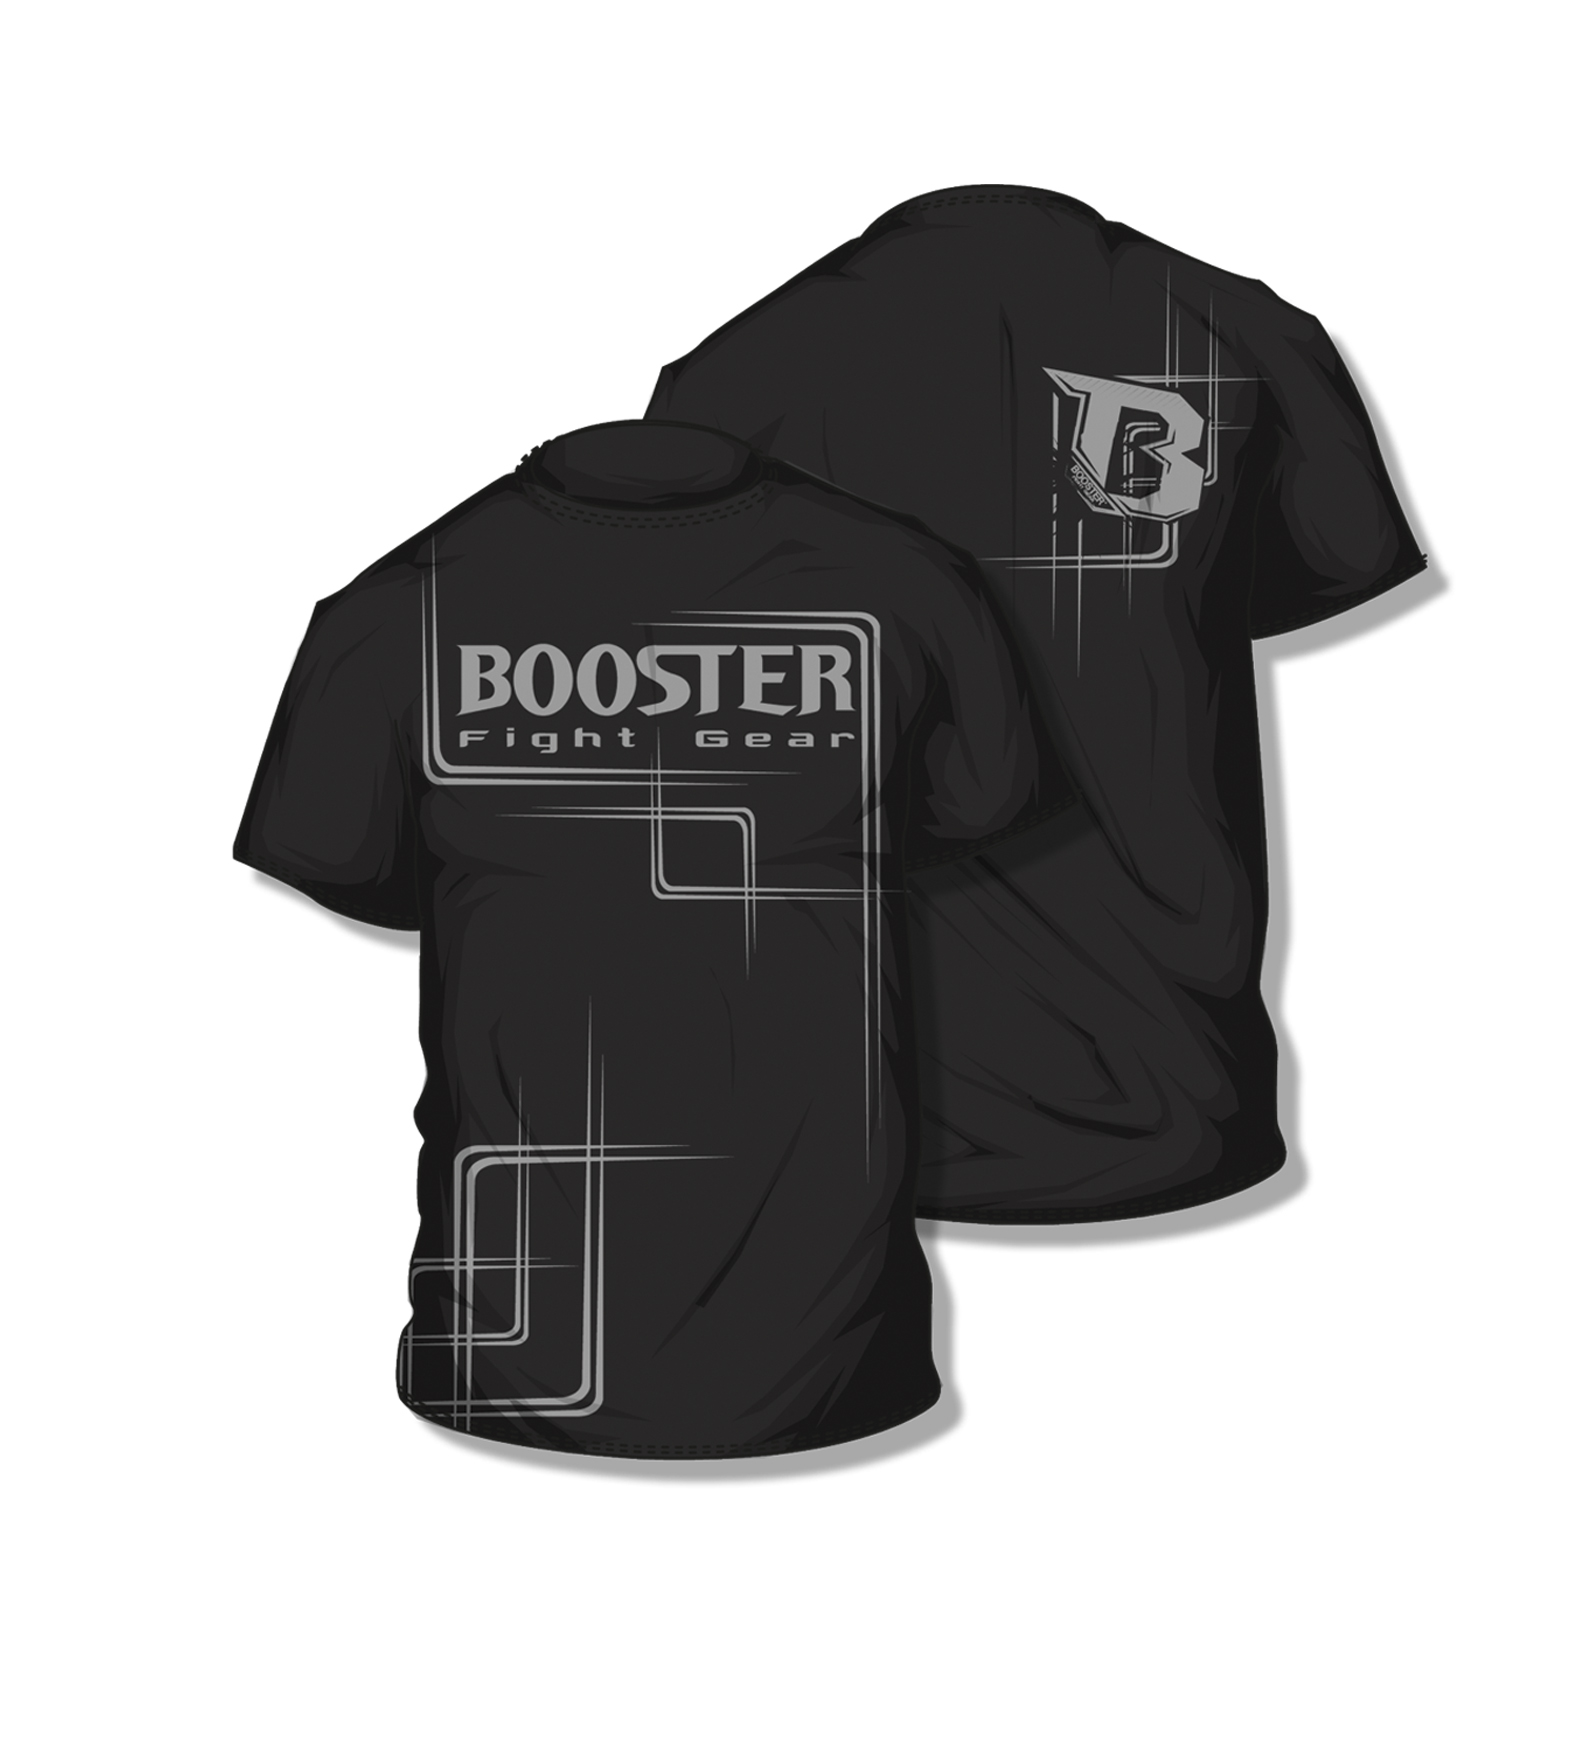 Booster  BC Walk out shirt black - L